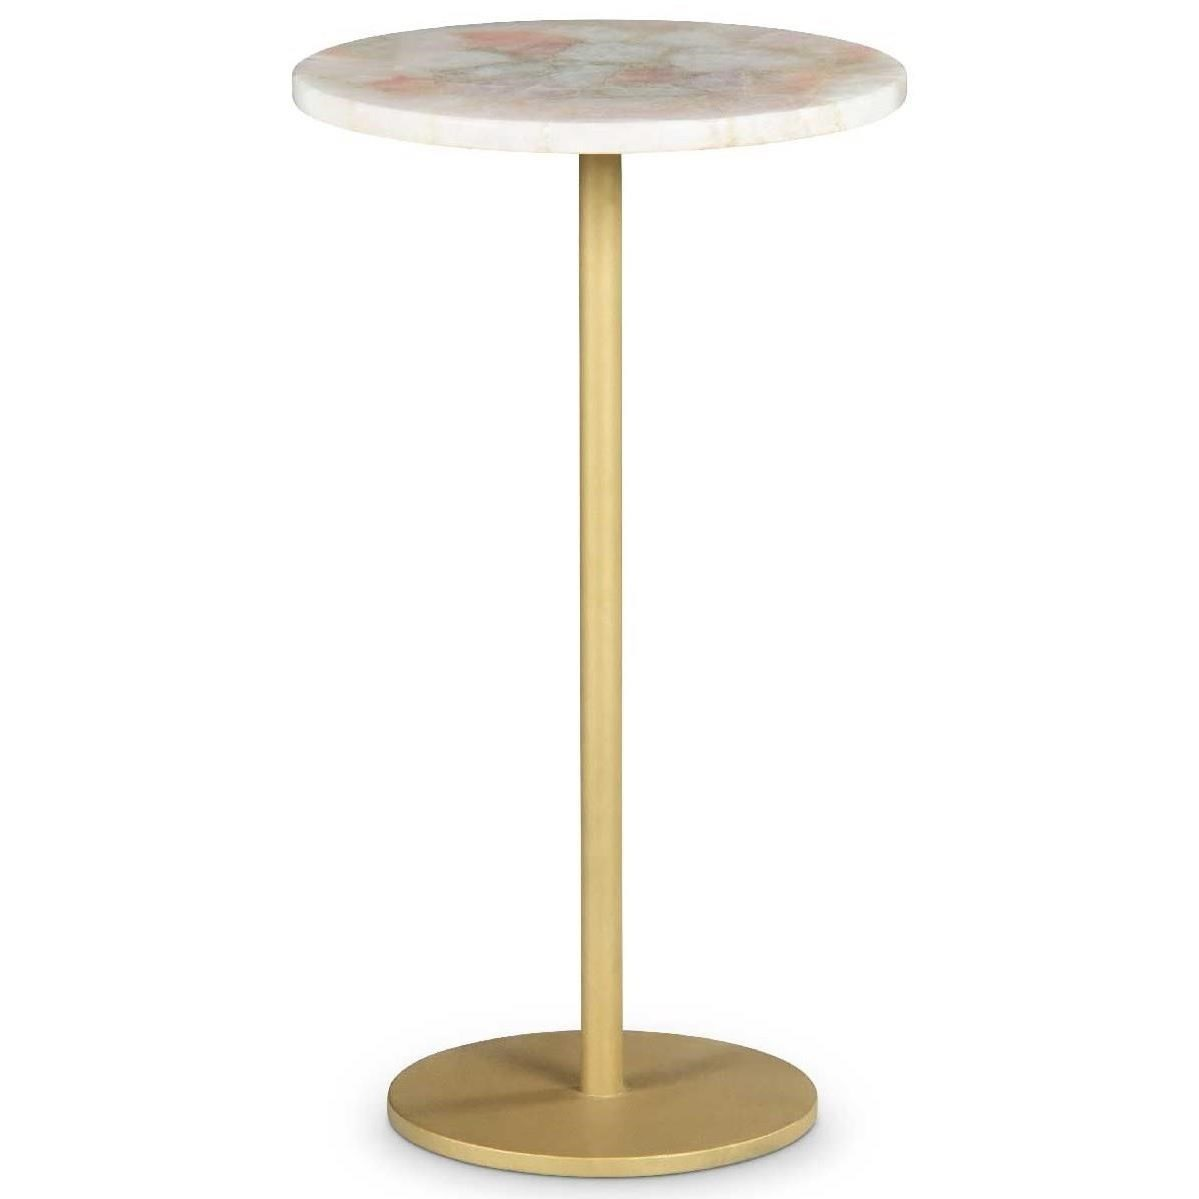 Rosie Rose Quartz Top Chairside End Table by Steve Silver at Northeast Factory Direct